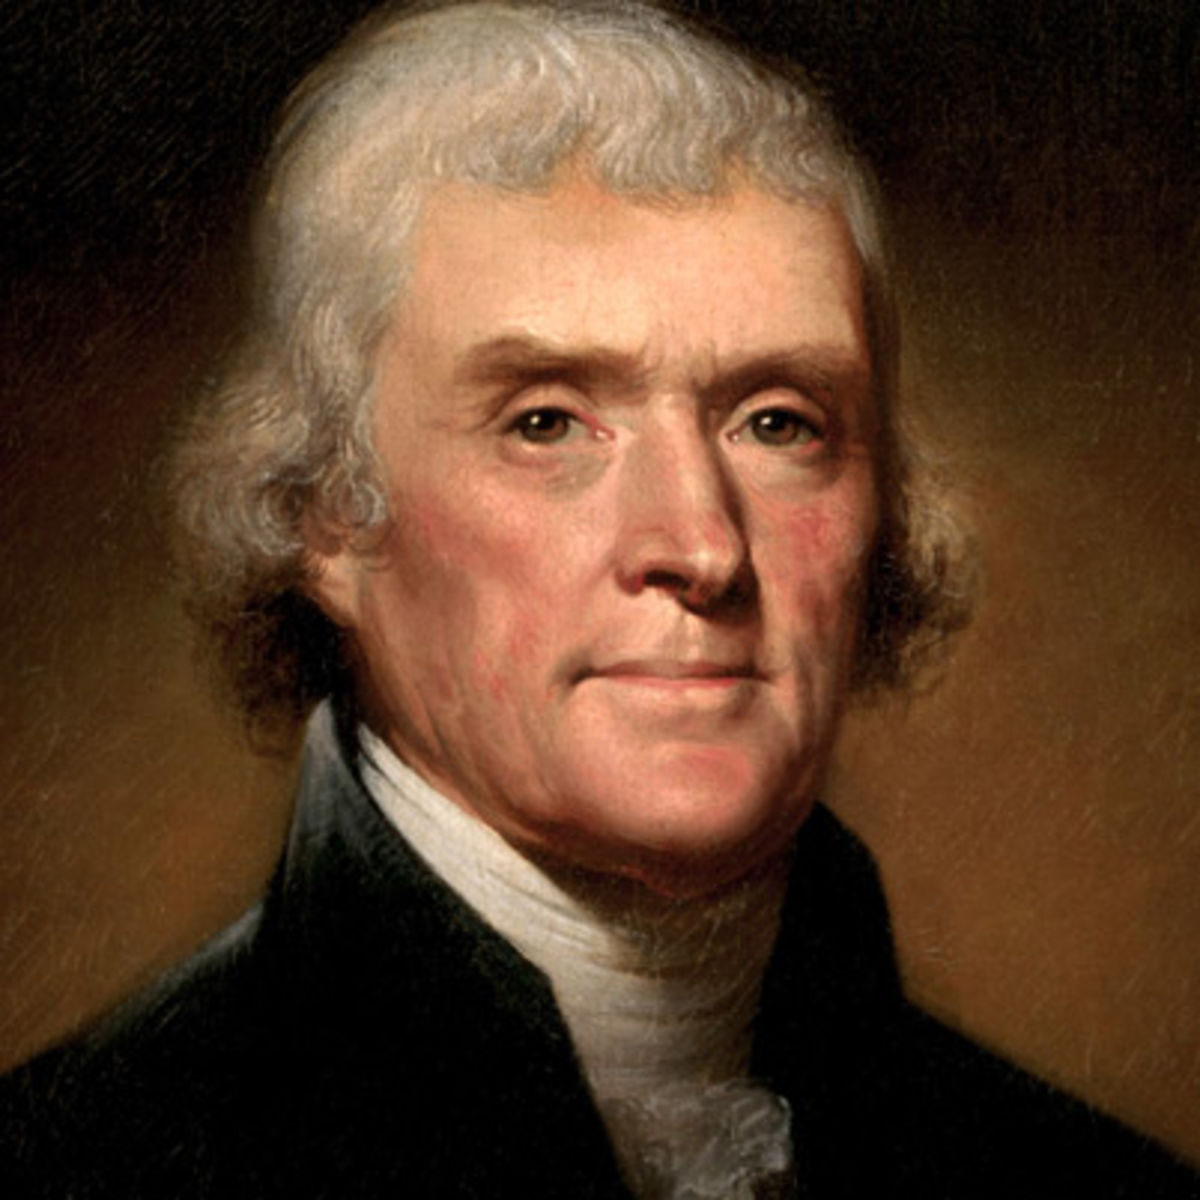 THOMAS JEFFERSON (1743-1826) AMERICAN FOUNDING FATHER, 3rd U.S. PRESIDENT